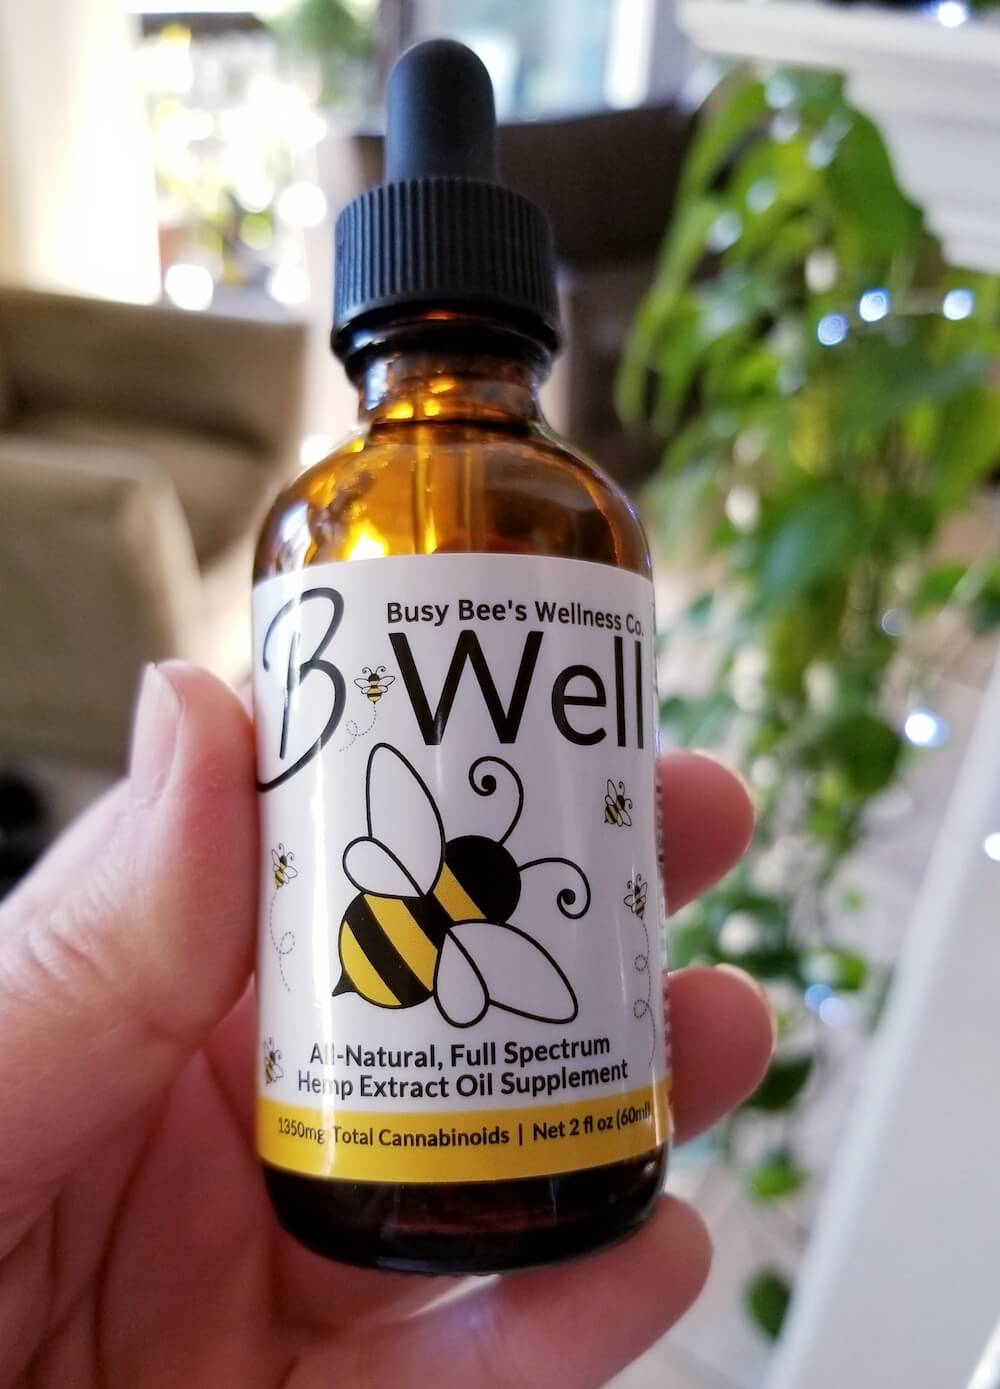 Busy Bee's CBD Oil helps me relieve stress and reduce anxiety